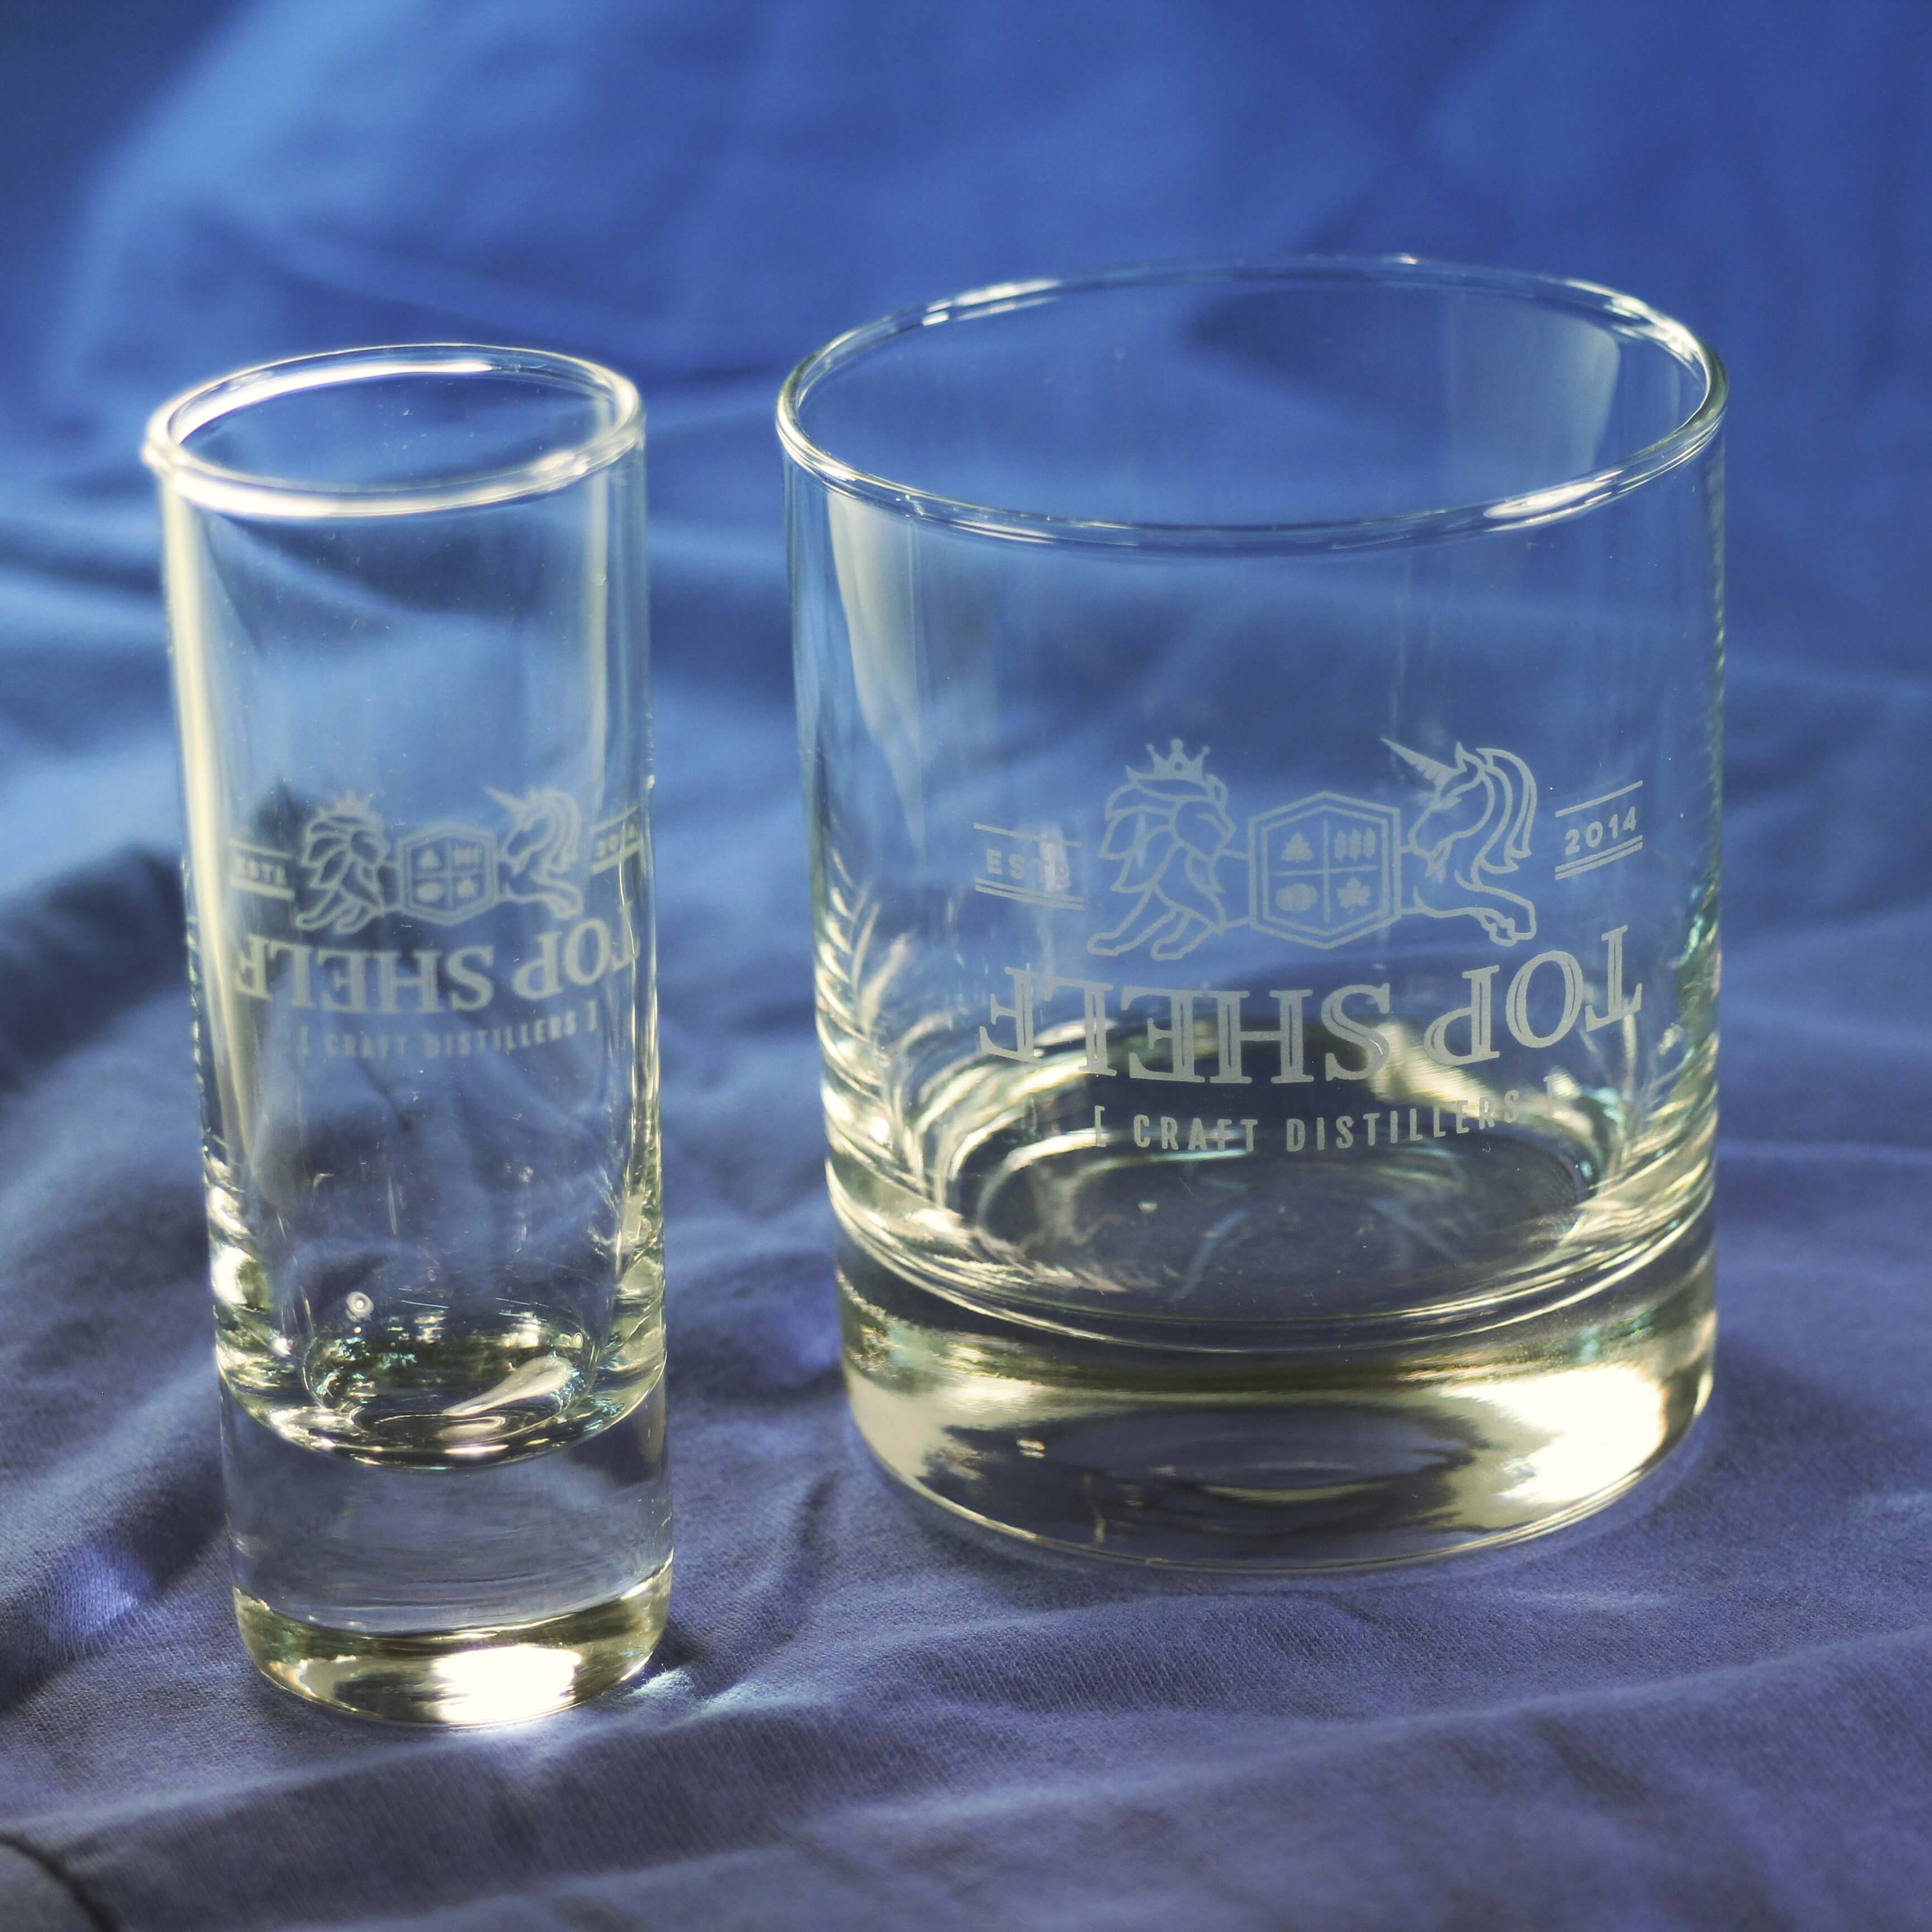 Drinkware, glassware, custom, printed, branded, logo, laser etched, shot glass, rocks glass. Ottawa Ontario, Canada. CAD. All Things Made. Promotional products, swag, bar, restaurants.